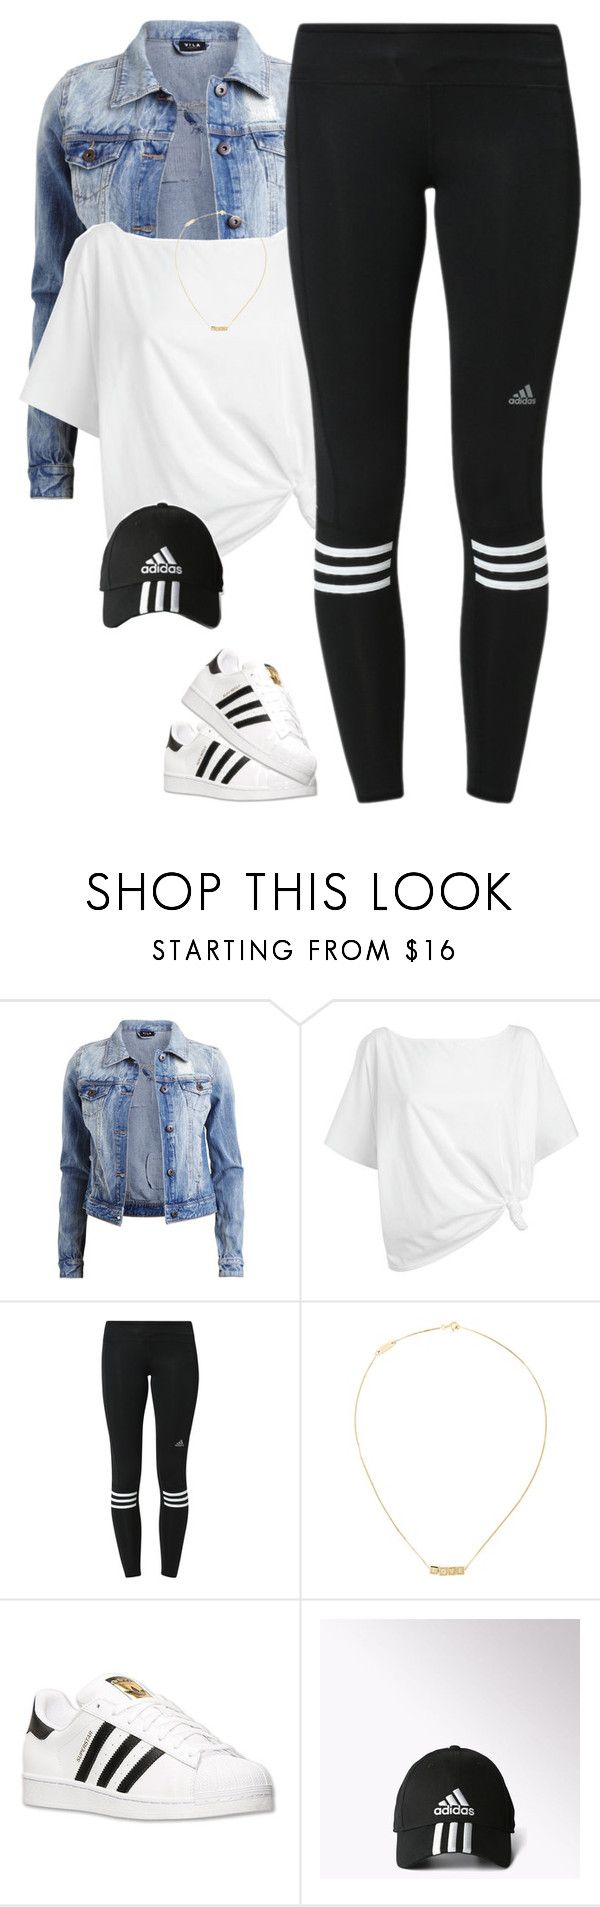 """""""Adidas*"""" by thatchickcrazy ❤ liked on Polyvore featuring Vila Milano, Red Herring, adidas and Yves Saint Laurent"""